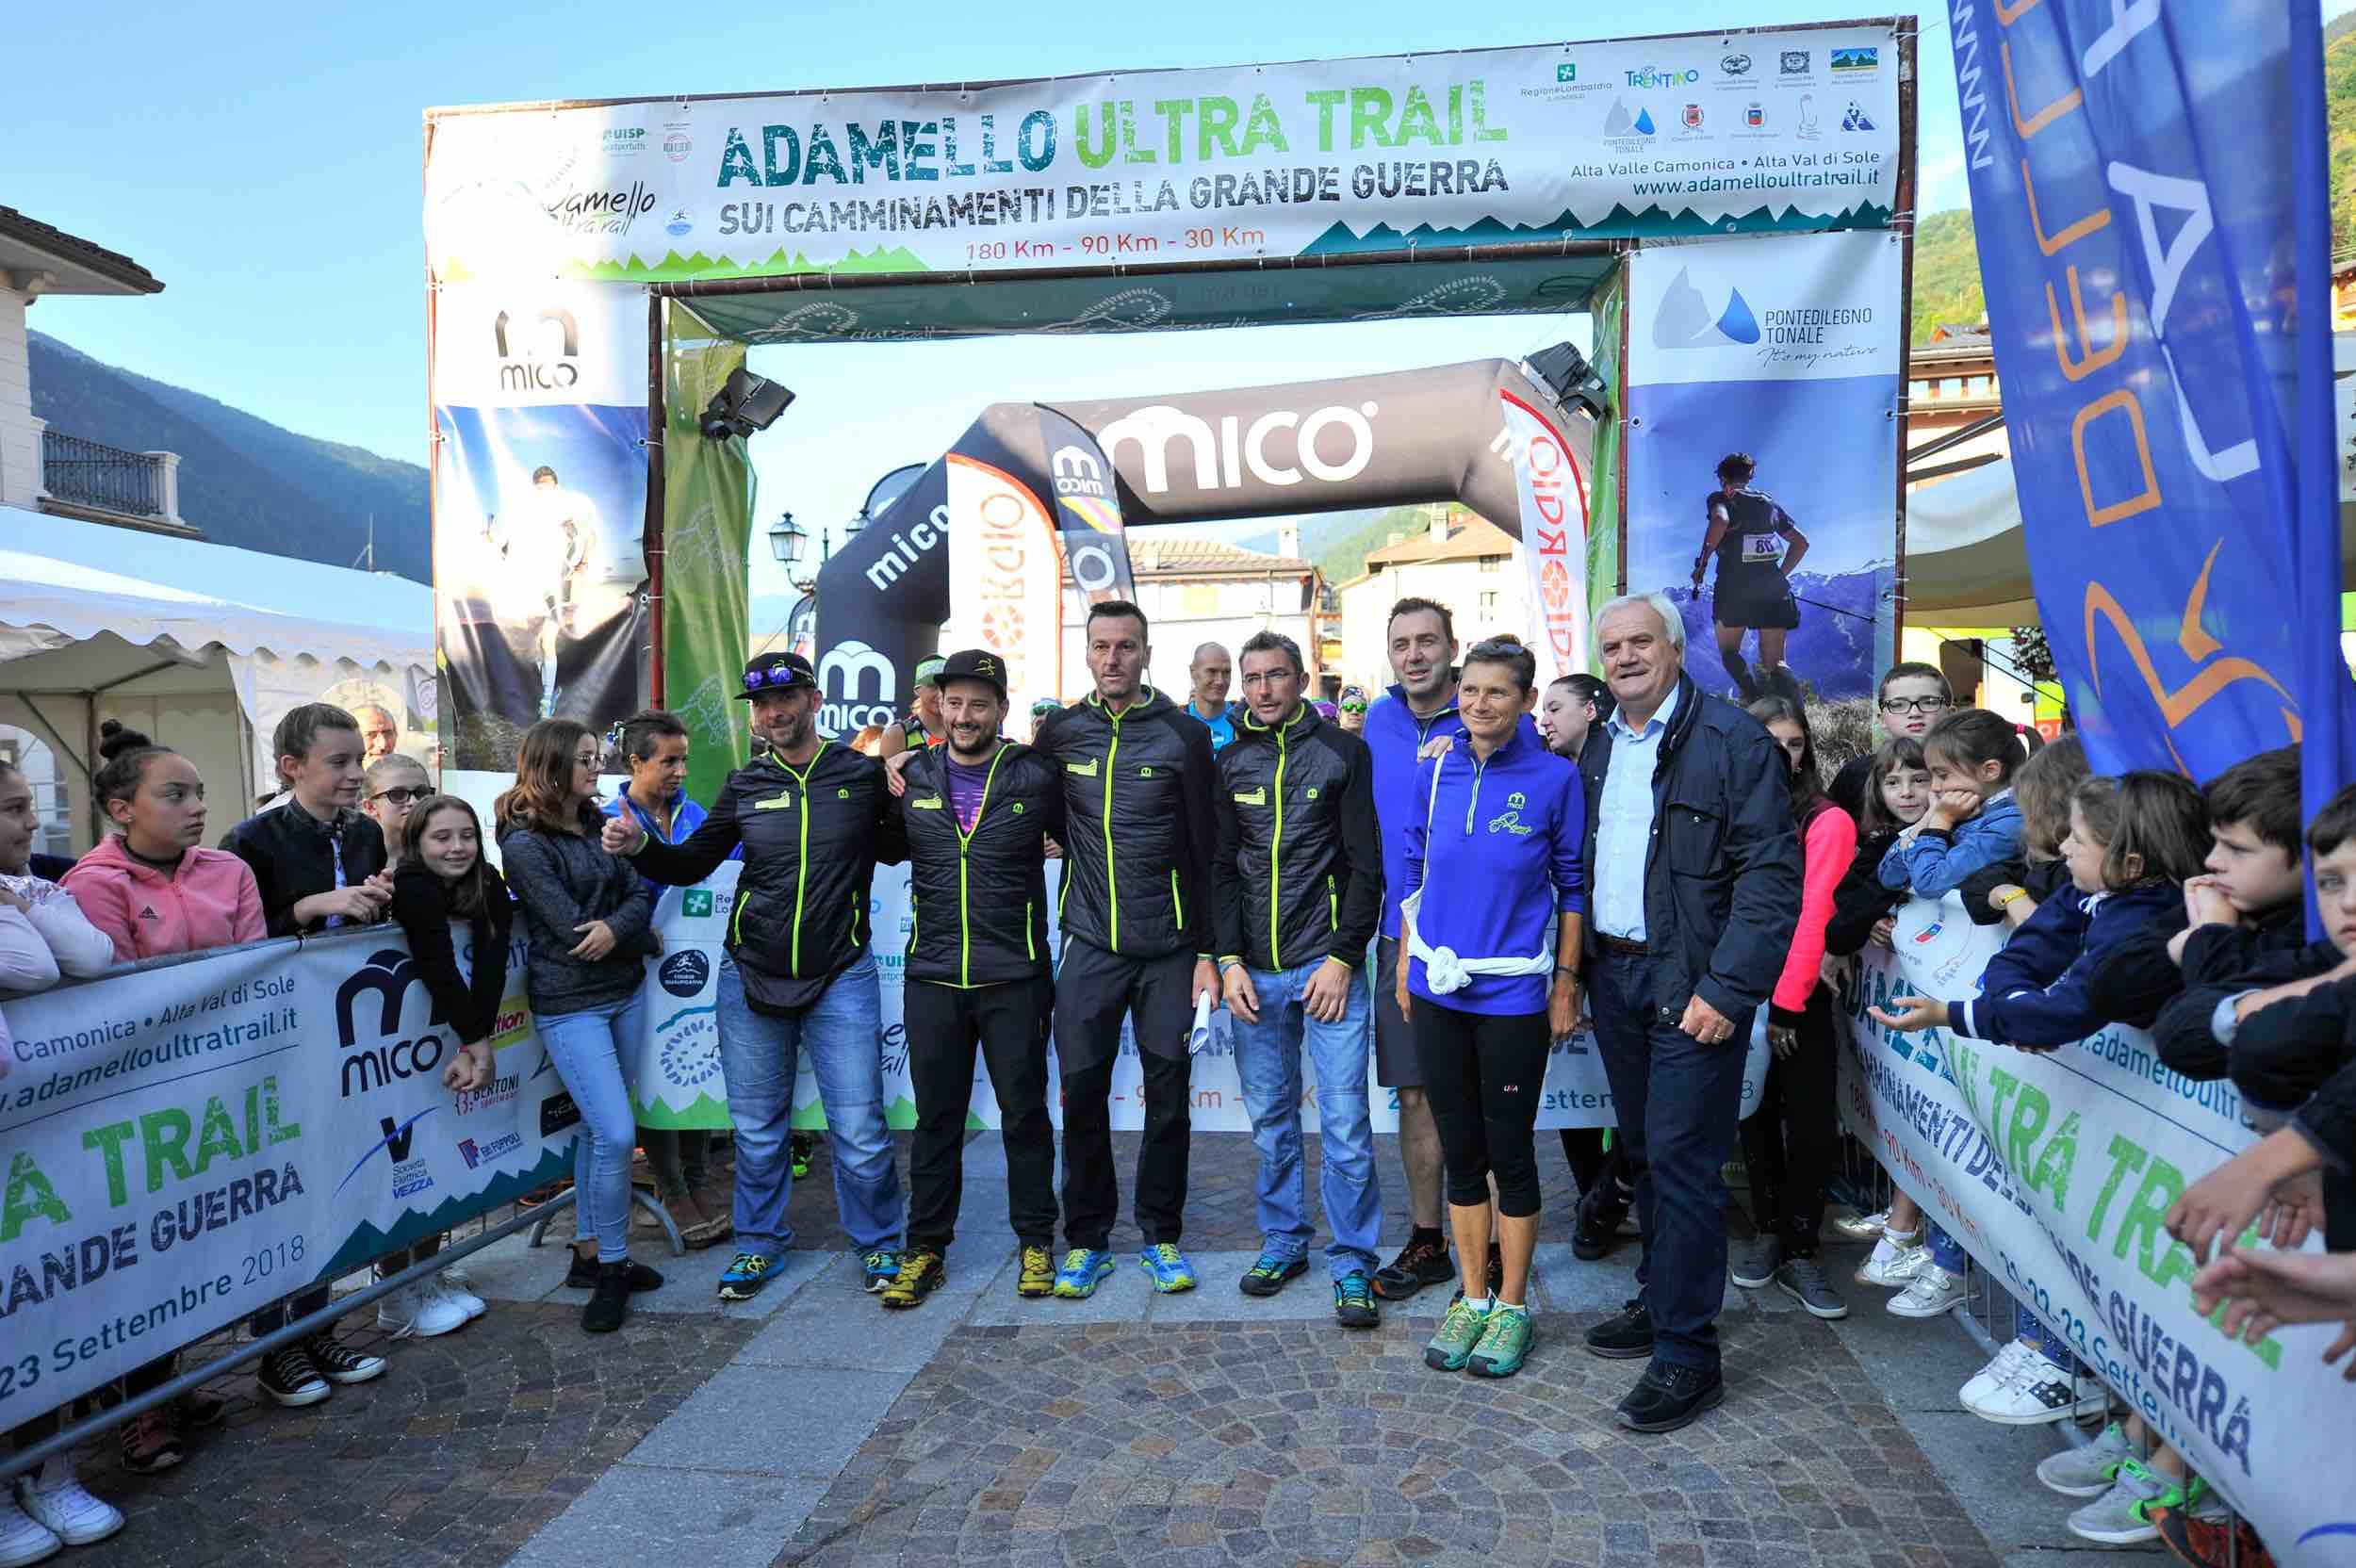 Adamello-ultra-trail-2018-comitato